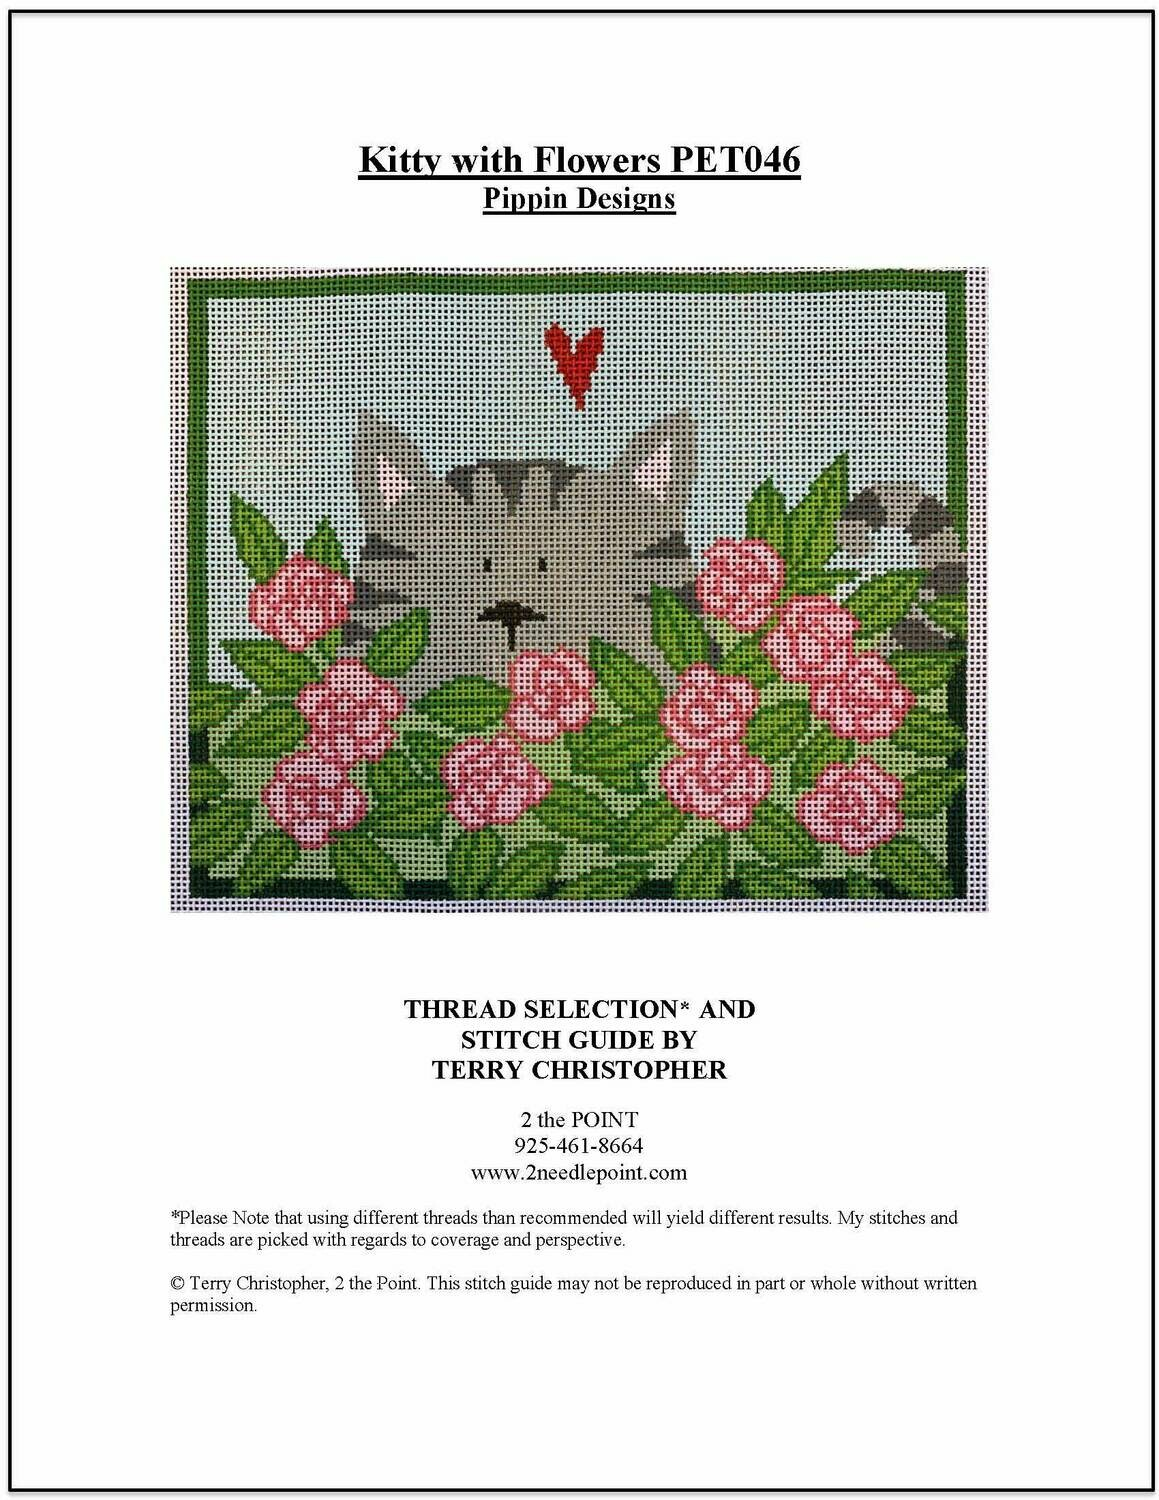 Pippin Designs, Kitty with Flowers PET046